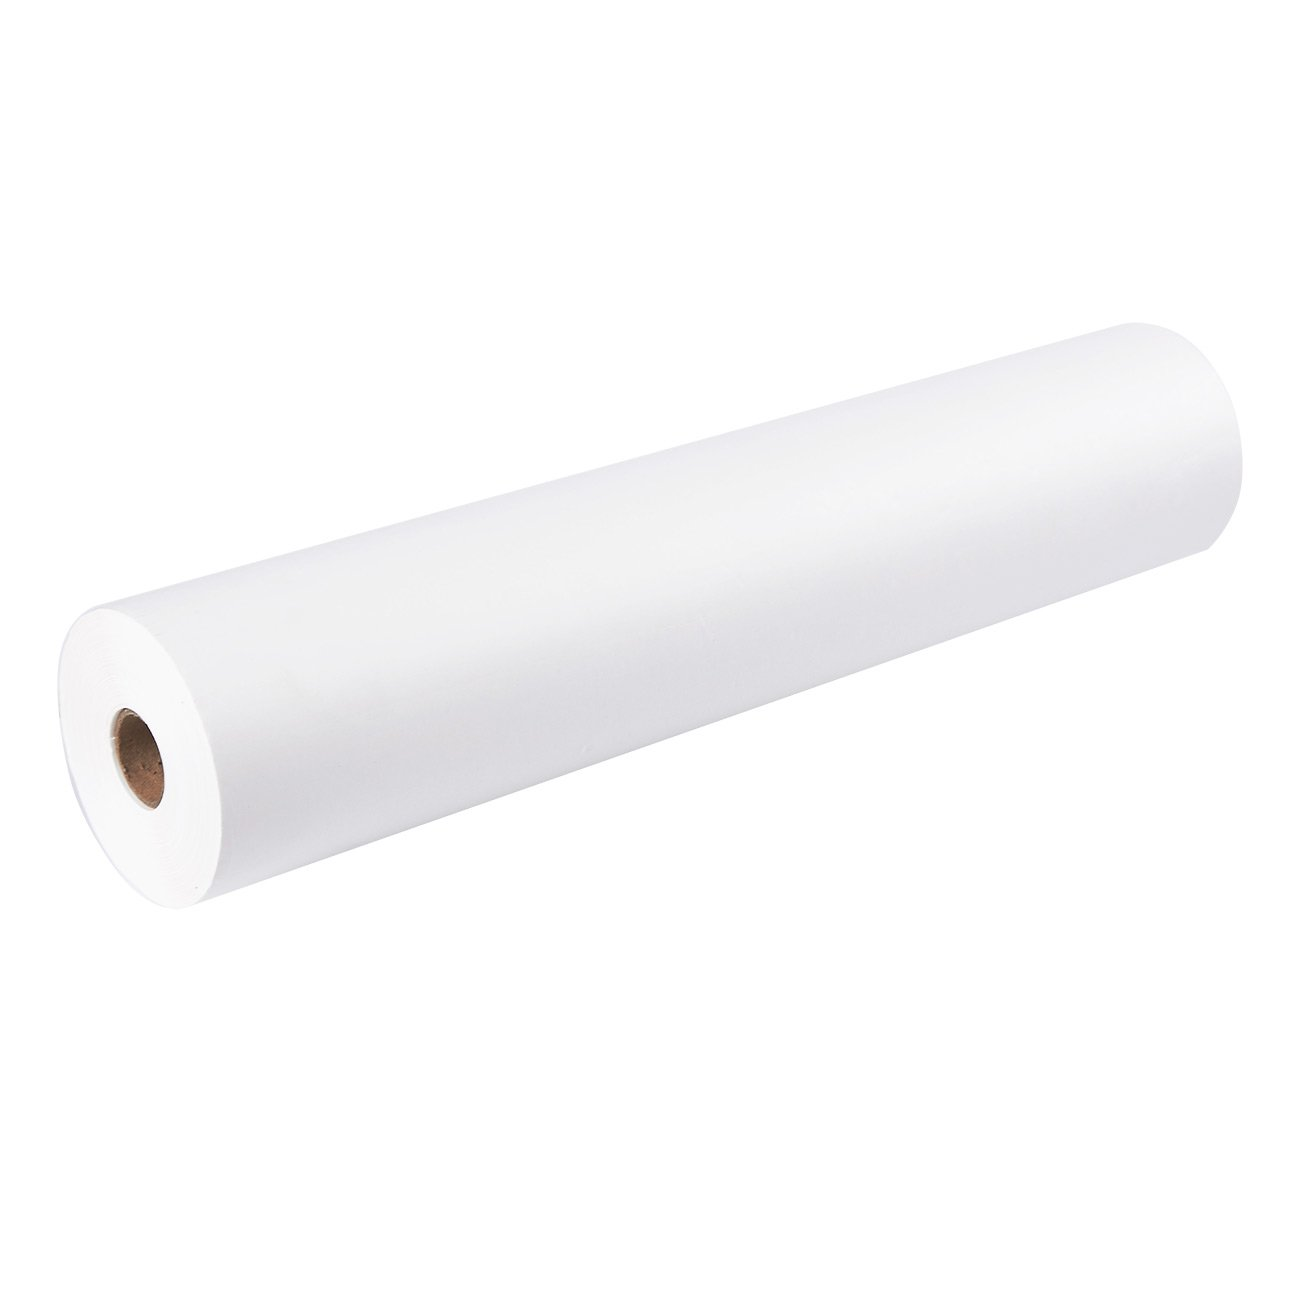 Kraft Paper Roll - Jumbo Packing Paper, White Gift Wrapping Paper Roll for DIY Craft, Packing, Shipping, 17.5 x 2400 Inches (200 Feet) Juvale